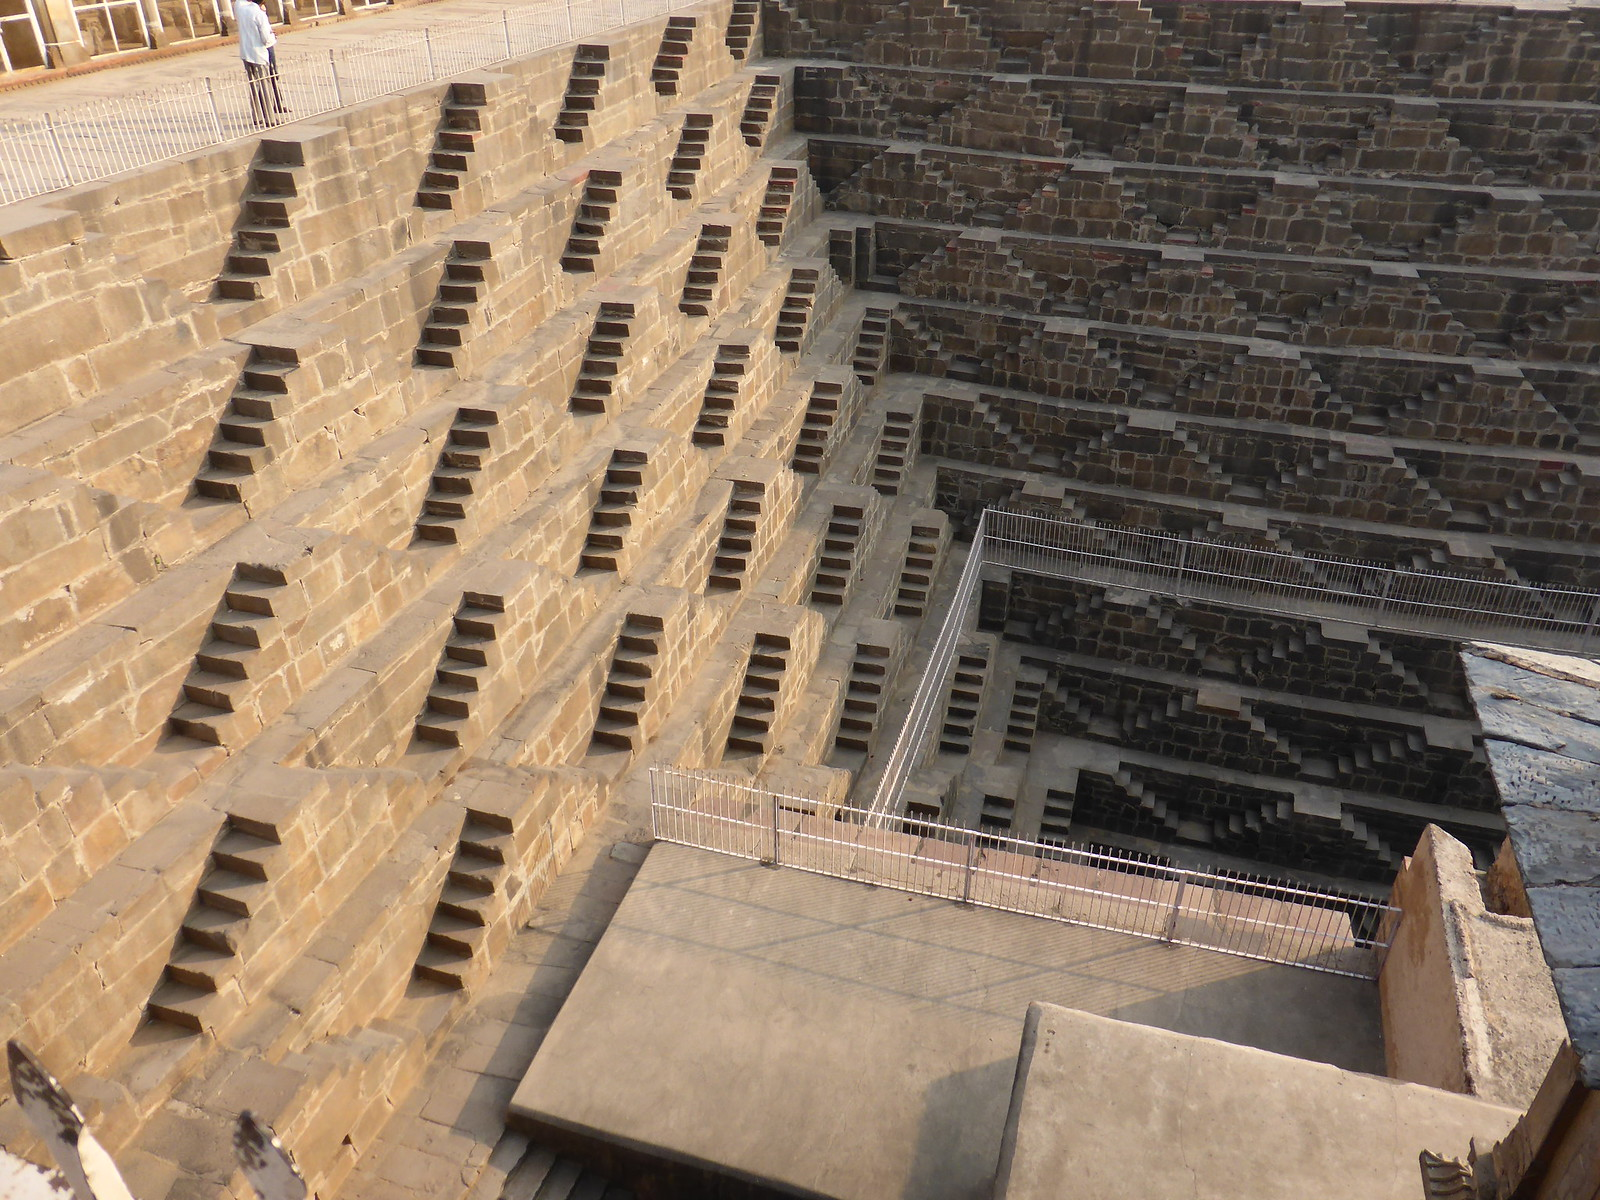 The Chand Baori (Stepwell)